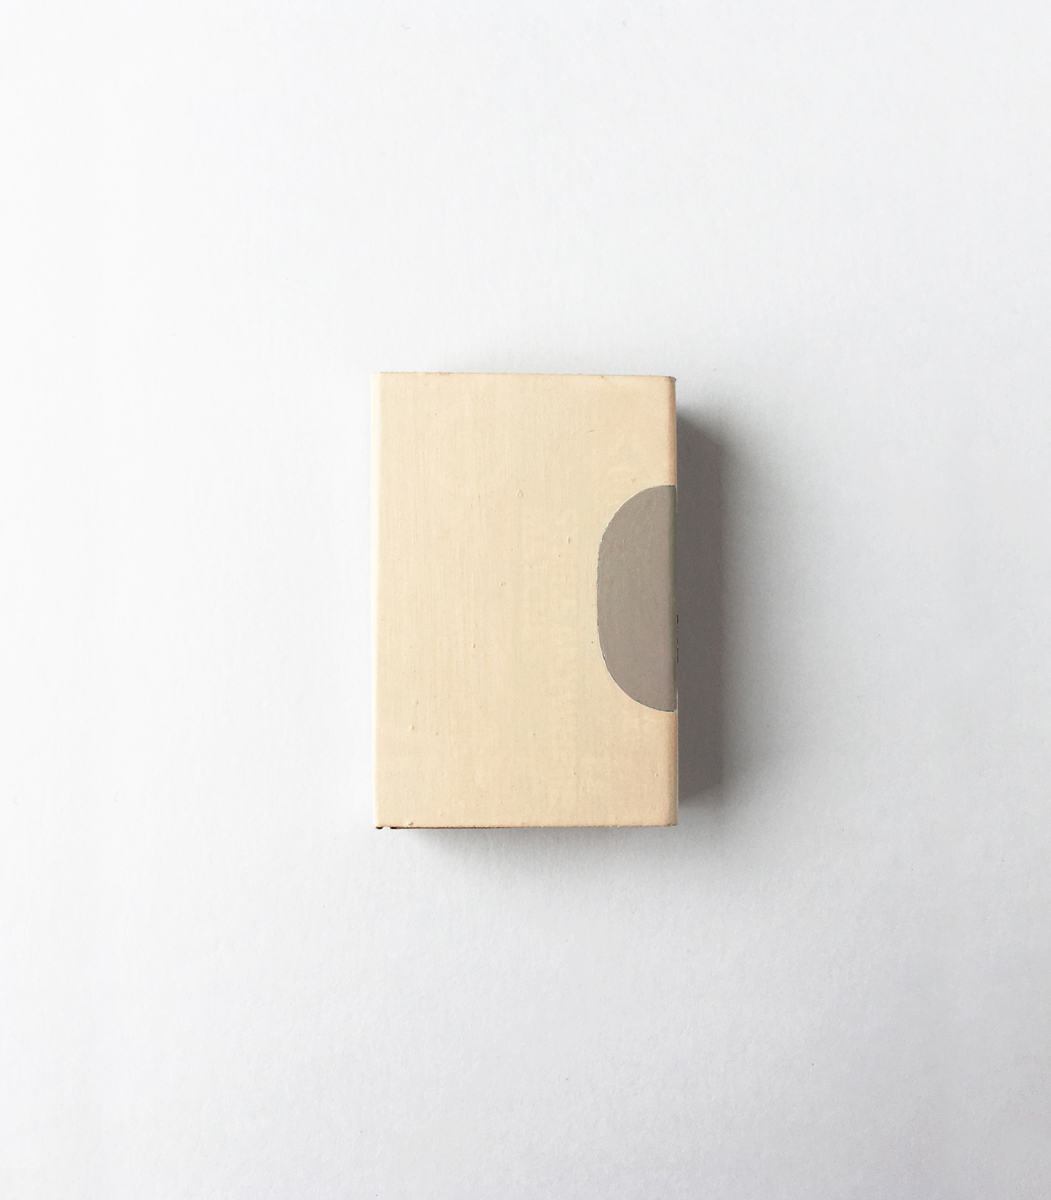 A matchbox with a bisected oval painted on one edge in taupe on cream.